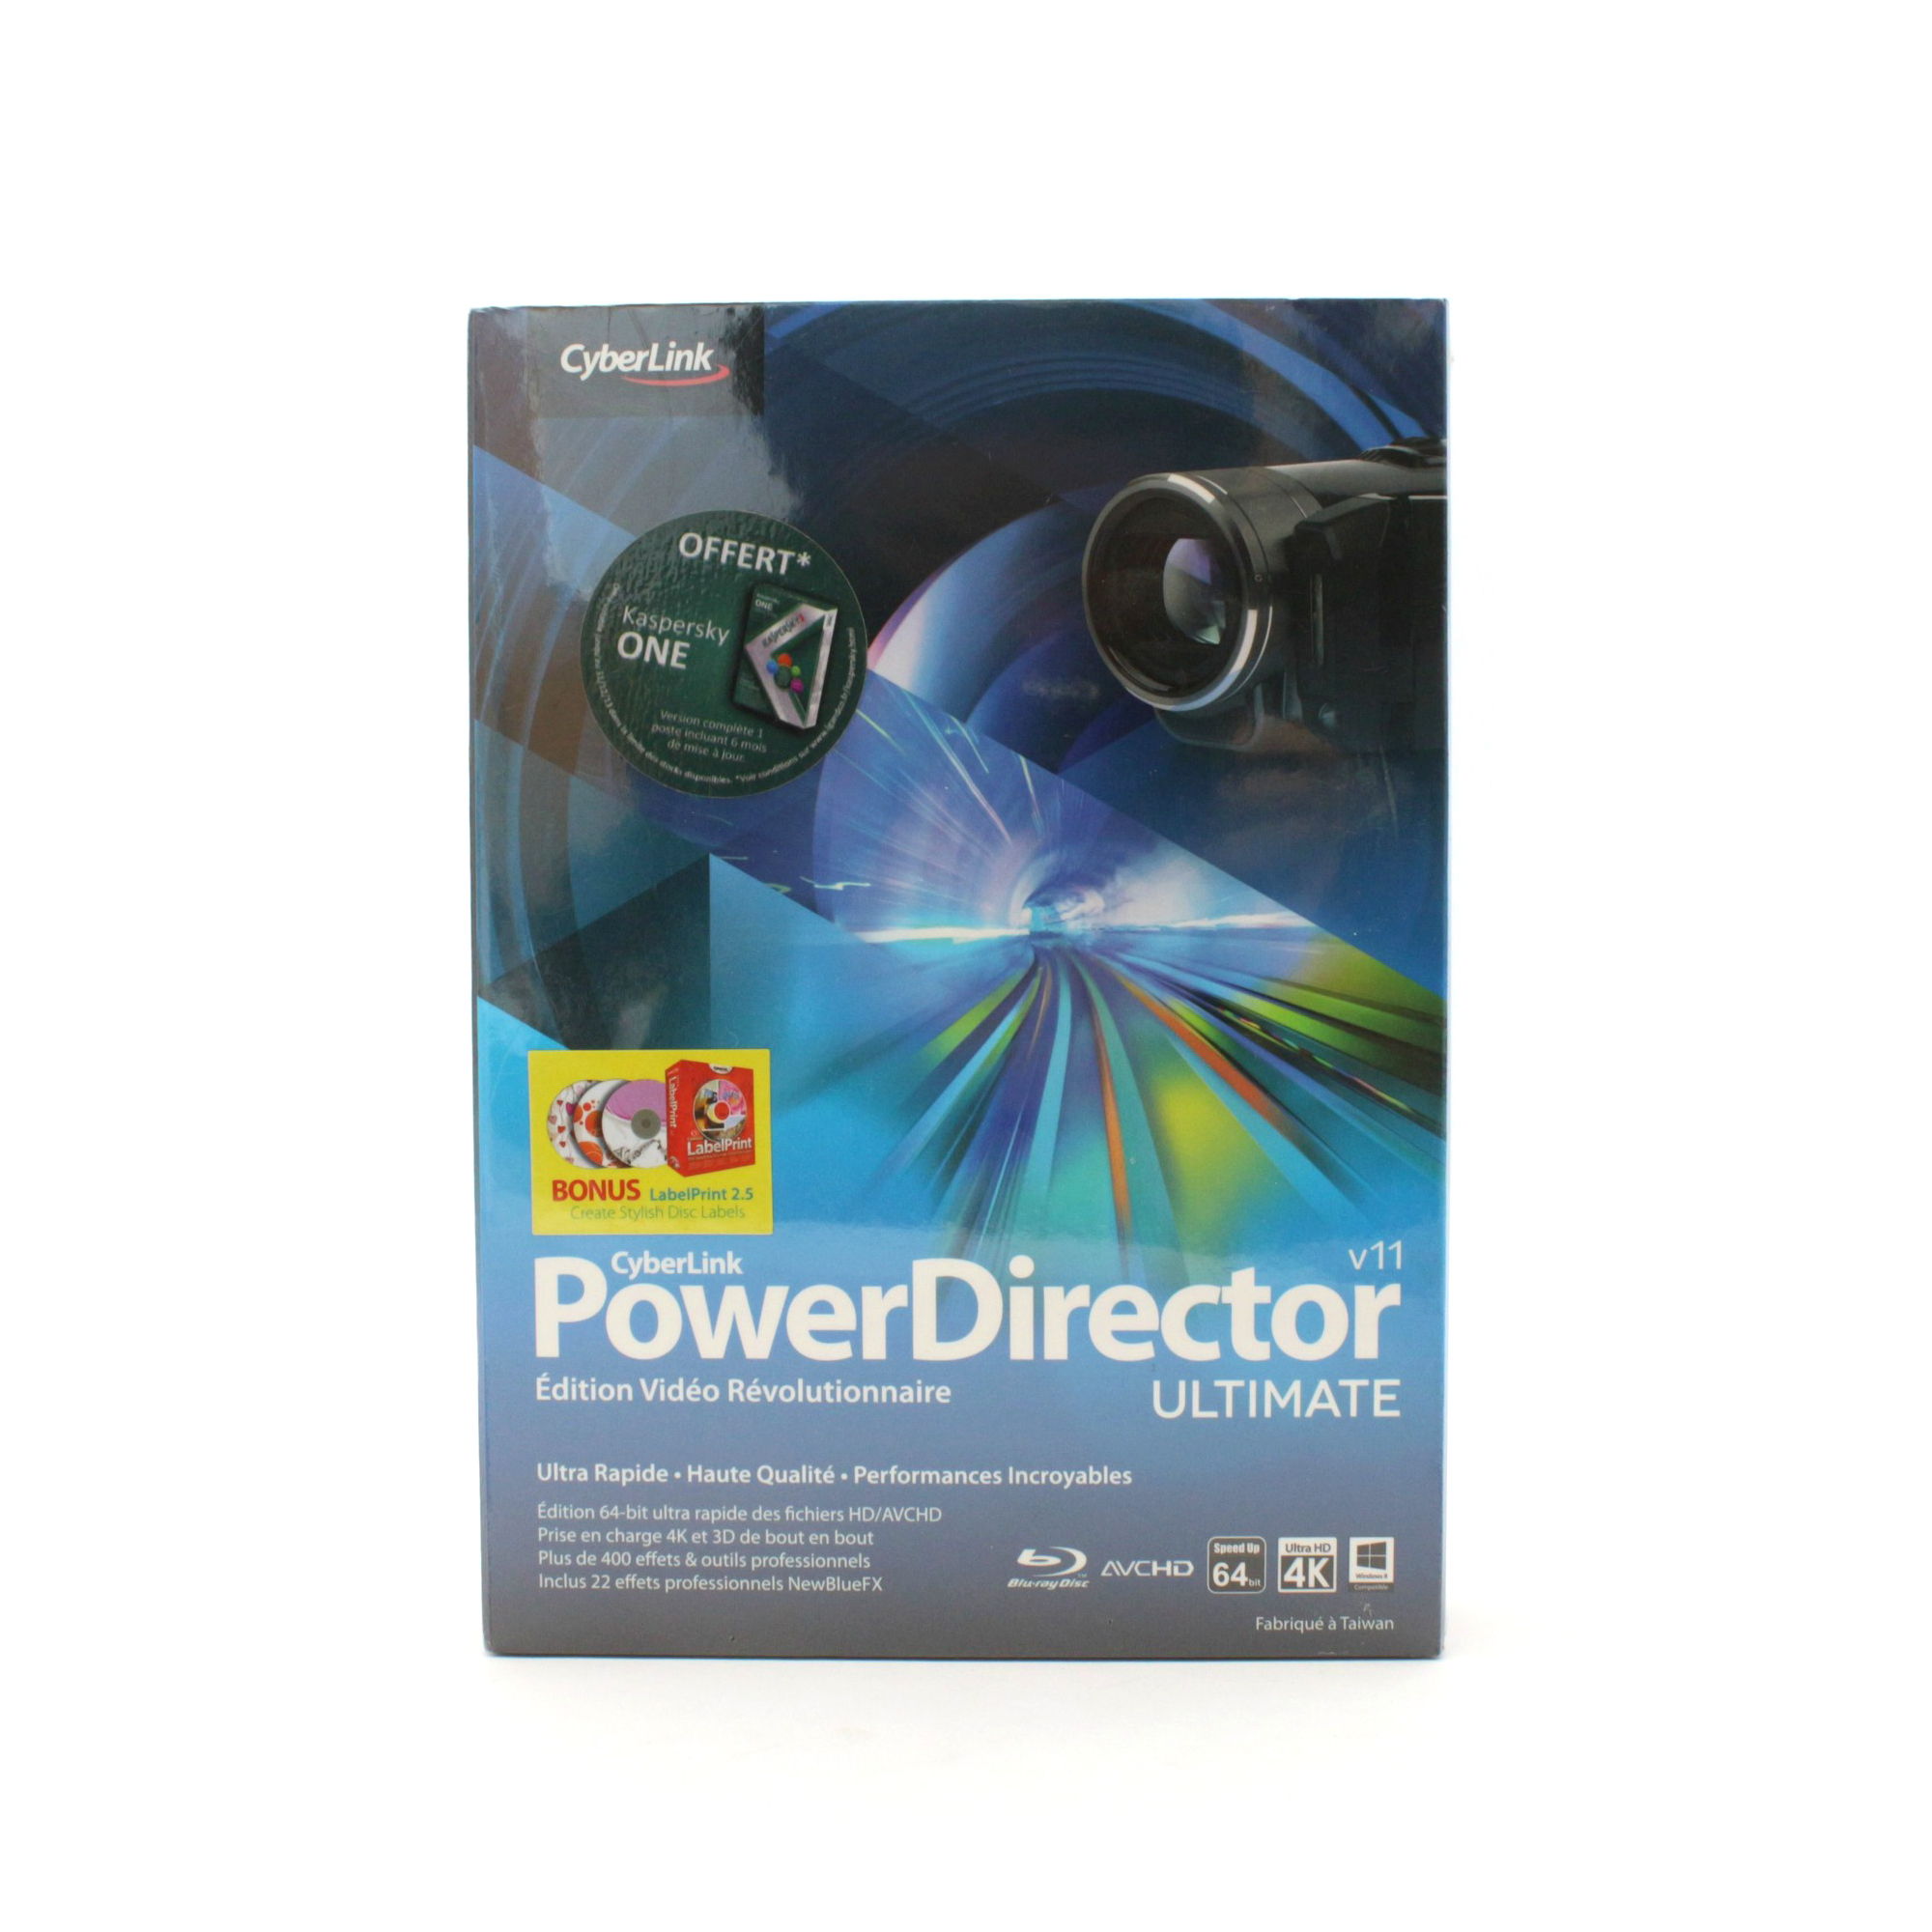 CyberLink PowerDirector V11 Ultimate